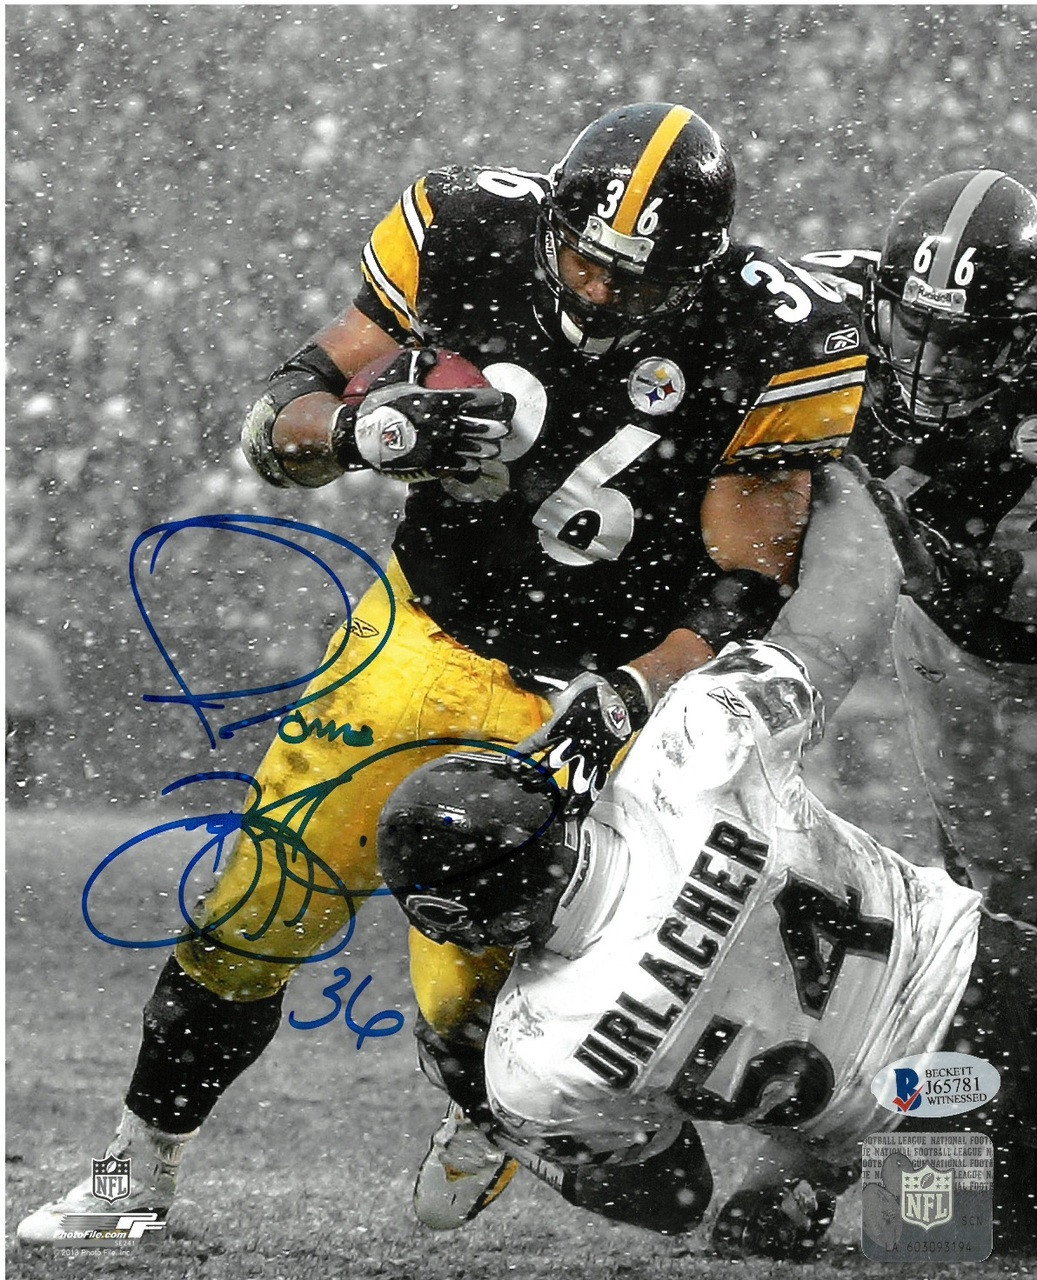 e98bc4272 Jerome Bettis Autographed Pittsburgh Steelers 8x10 Photo  3 ...